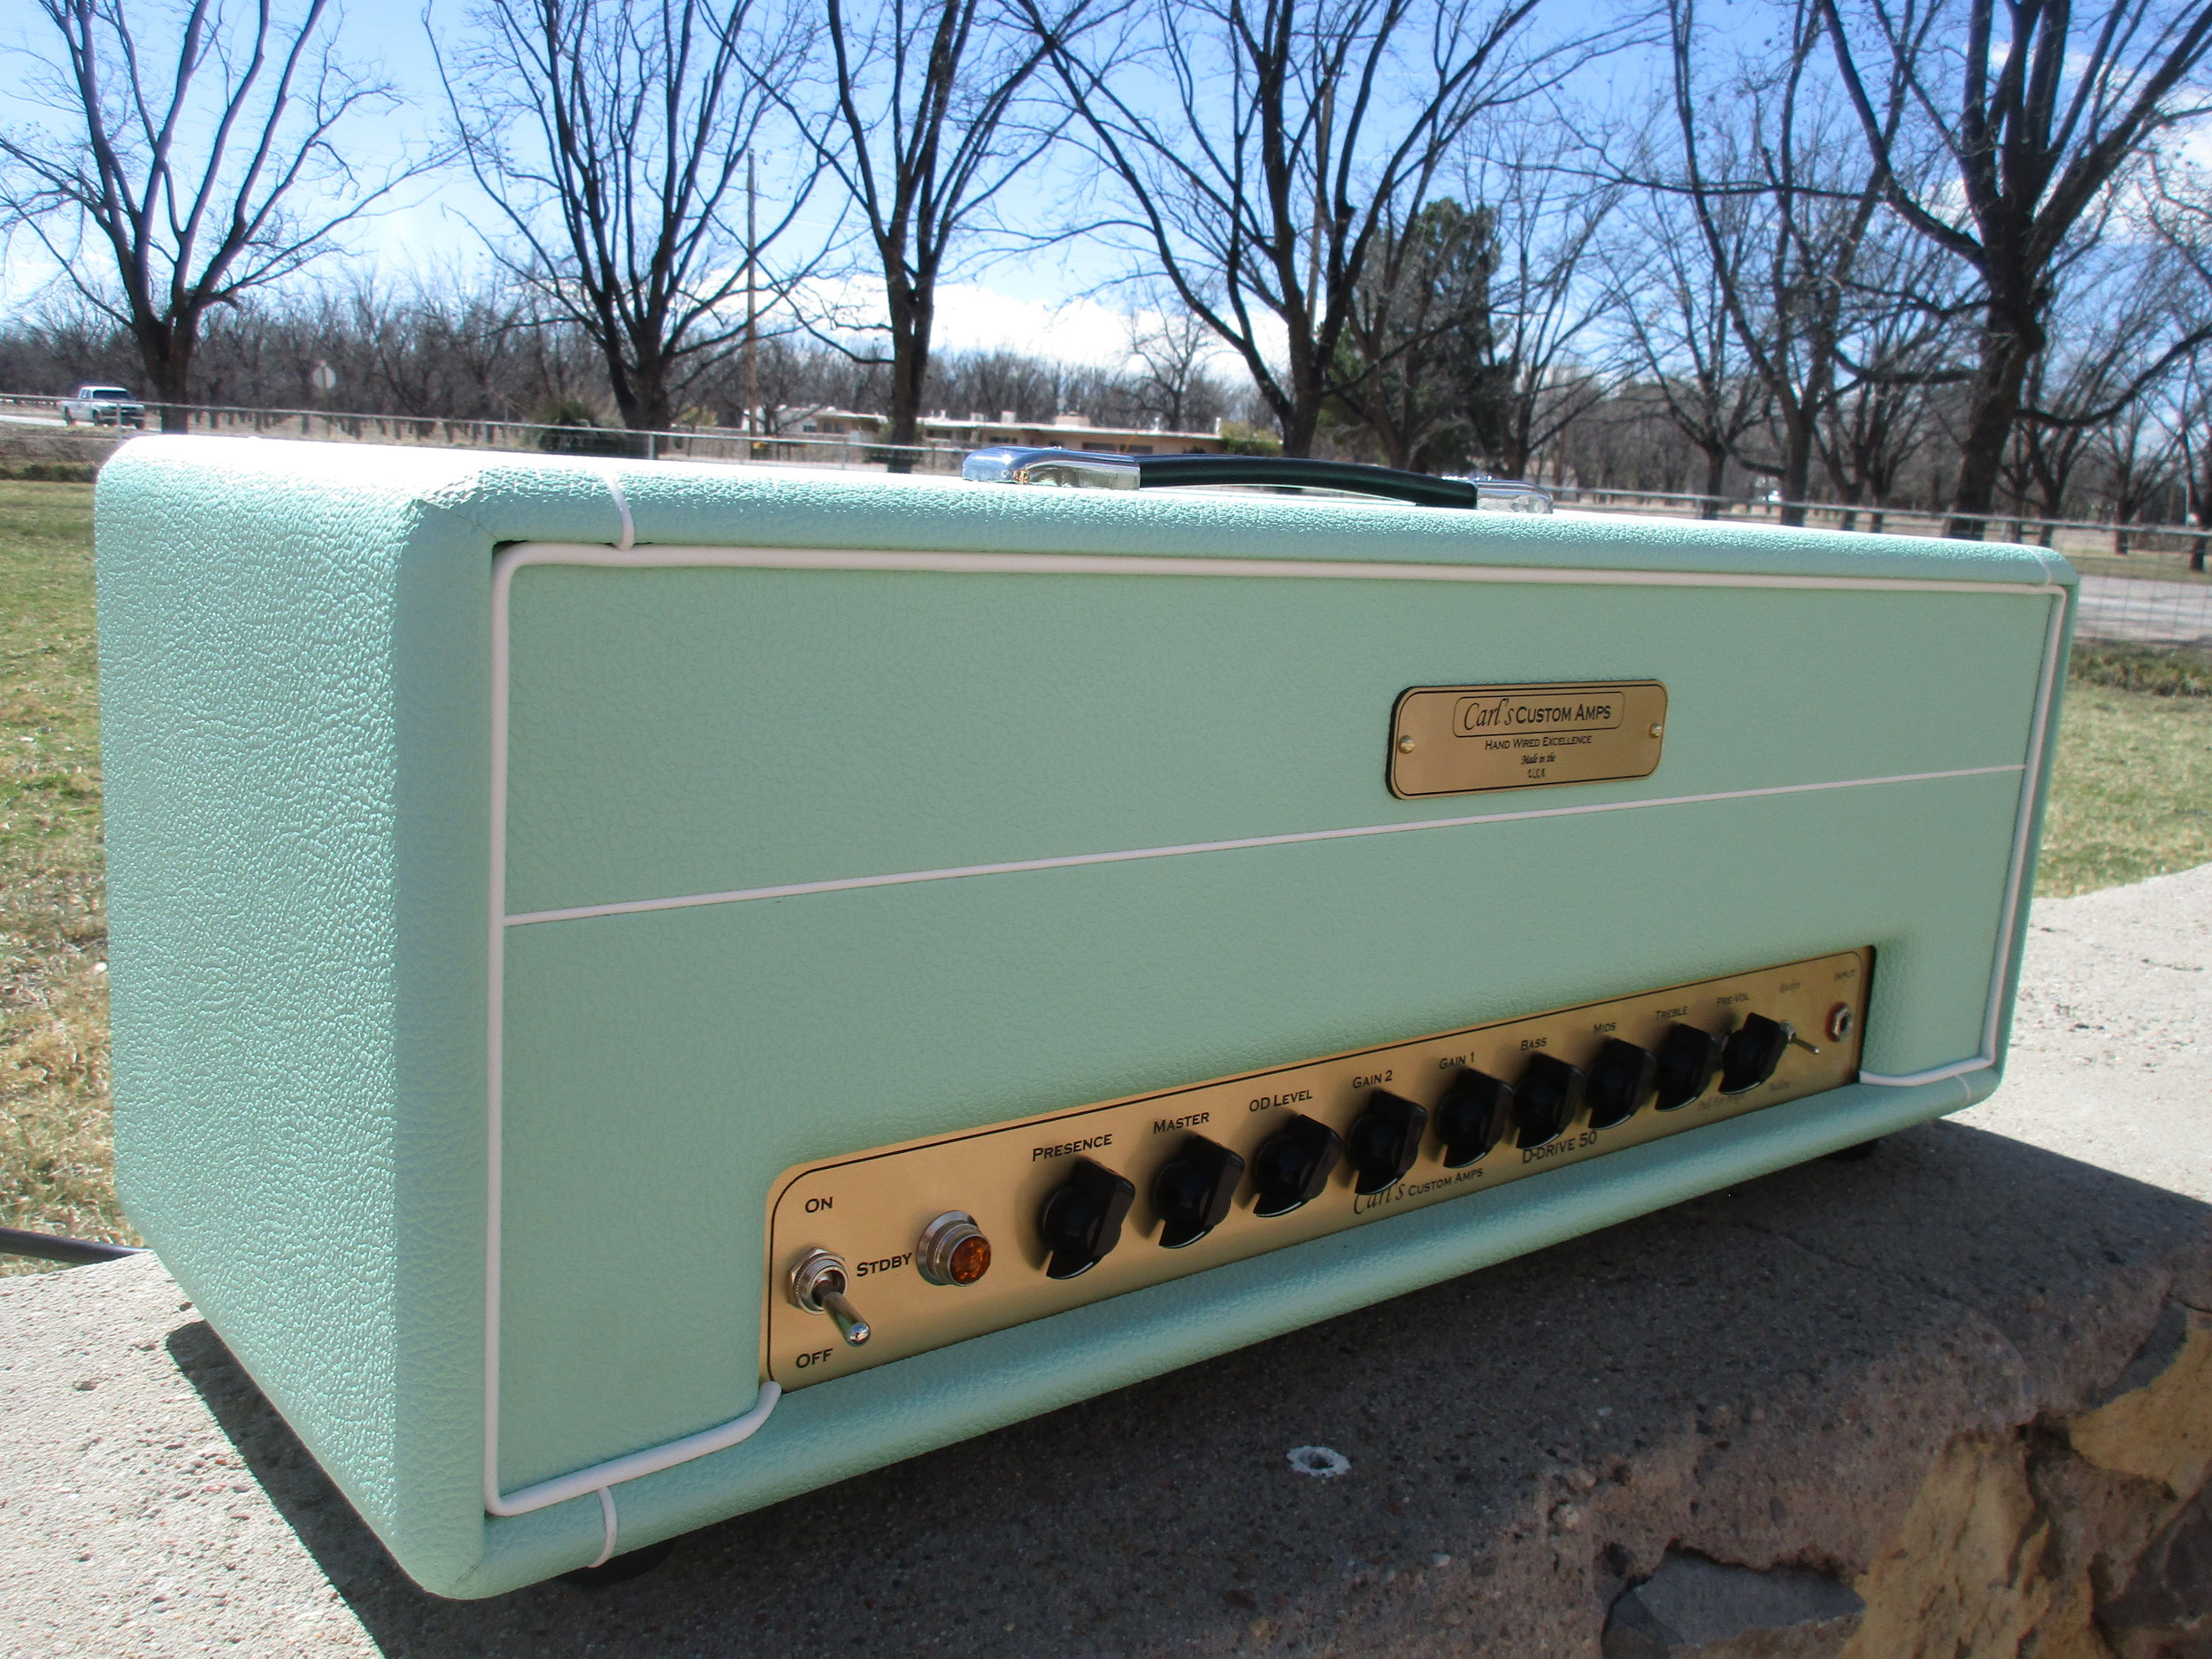 """This was an interesting one off amp: the D Drive. It's Dumble inspired but a single channel (the lead channel) with more flexibility since all those gain trim pots that only tech could adjust are now on the front of the amp. I've implemented a few tricks of my own: the floor noise less than Dumble and Ive made it more touch sensitive. It also has tube buffered FX loop for modulation effects.  The buyer wrote: """"Hi Carl!  You had made me the surf-green D-Drive a few months back, and after many hours of practice and three gigs, I have to be honest...IT'S A BEAST. Thank you!!! It reminds me a lot of an old amp that I had that I always regretted letting go of...and now it's back, but better than ever. Thanks so much for your time, Carl! And again, thanks for the D-Drive. It's PHENOMENAL. """" Mitchell P."""